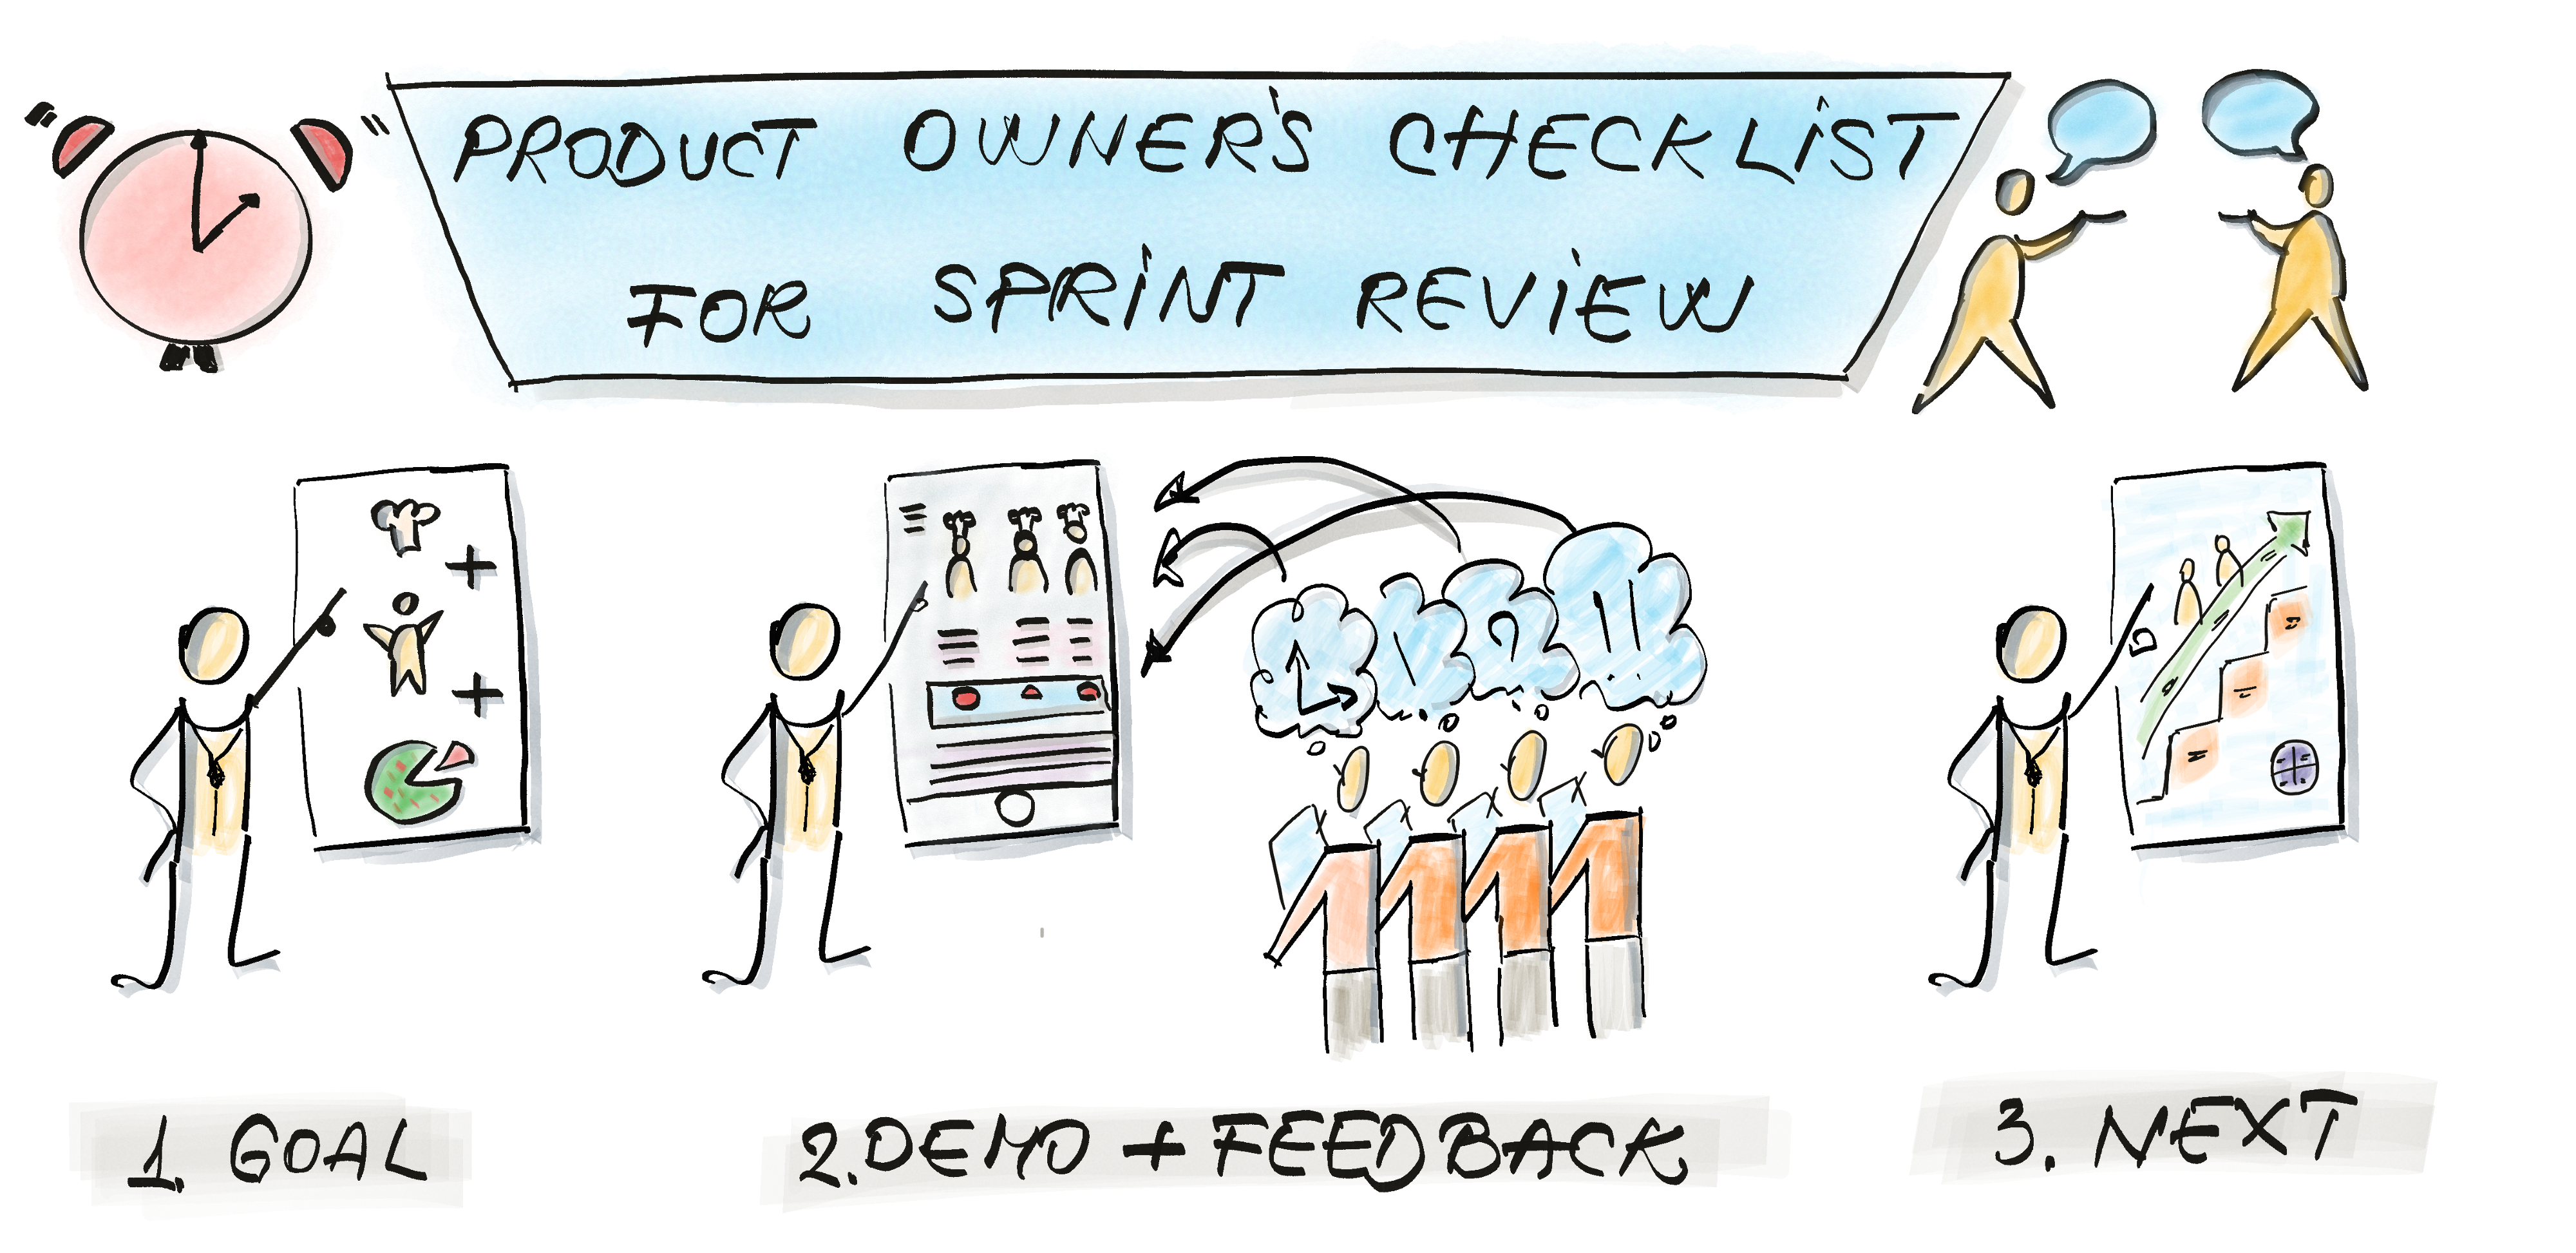 Sprint review meeting has 3 steps: present the goal, demo the work done, collect feedback and next sprint insights.